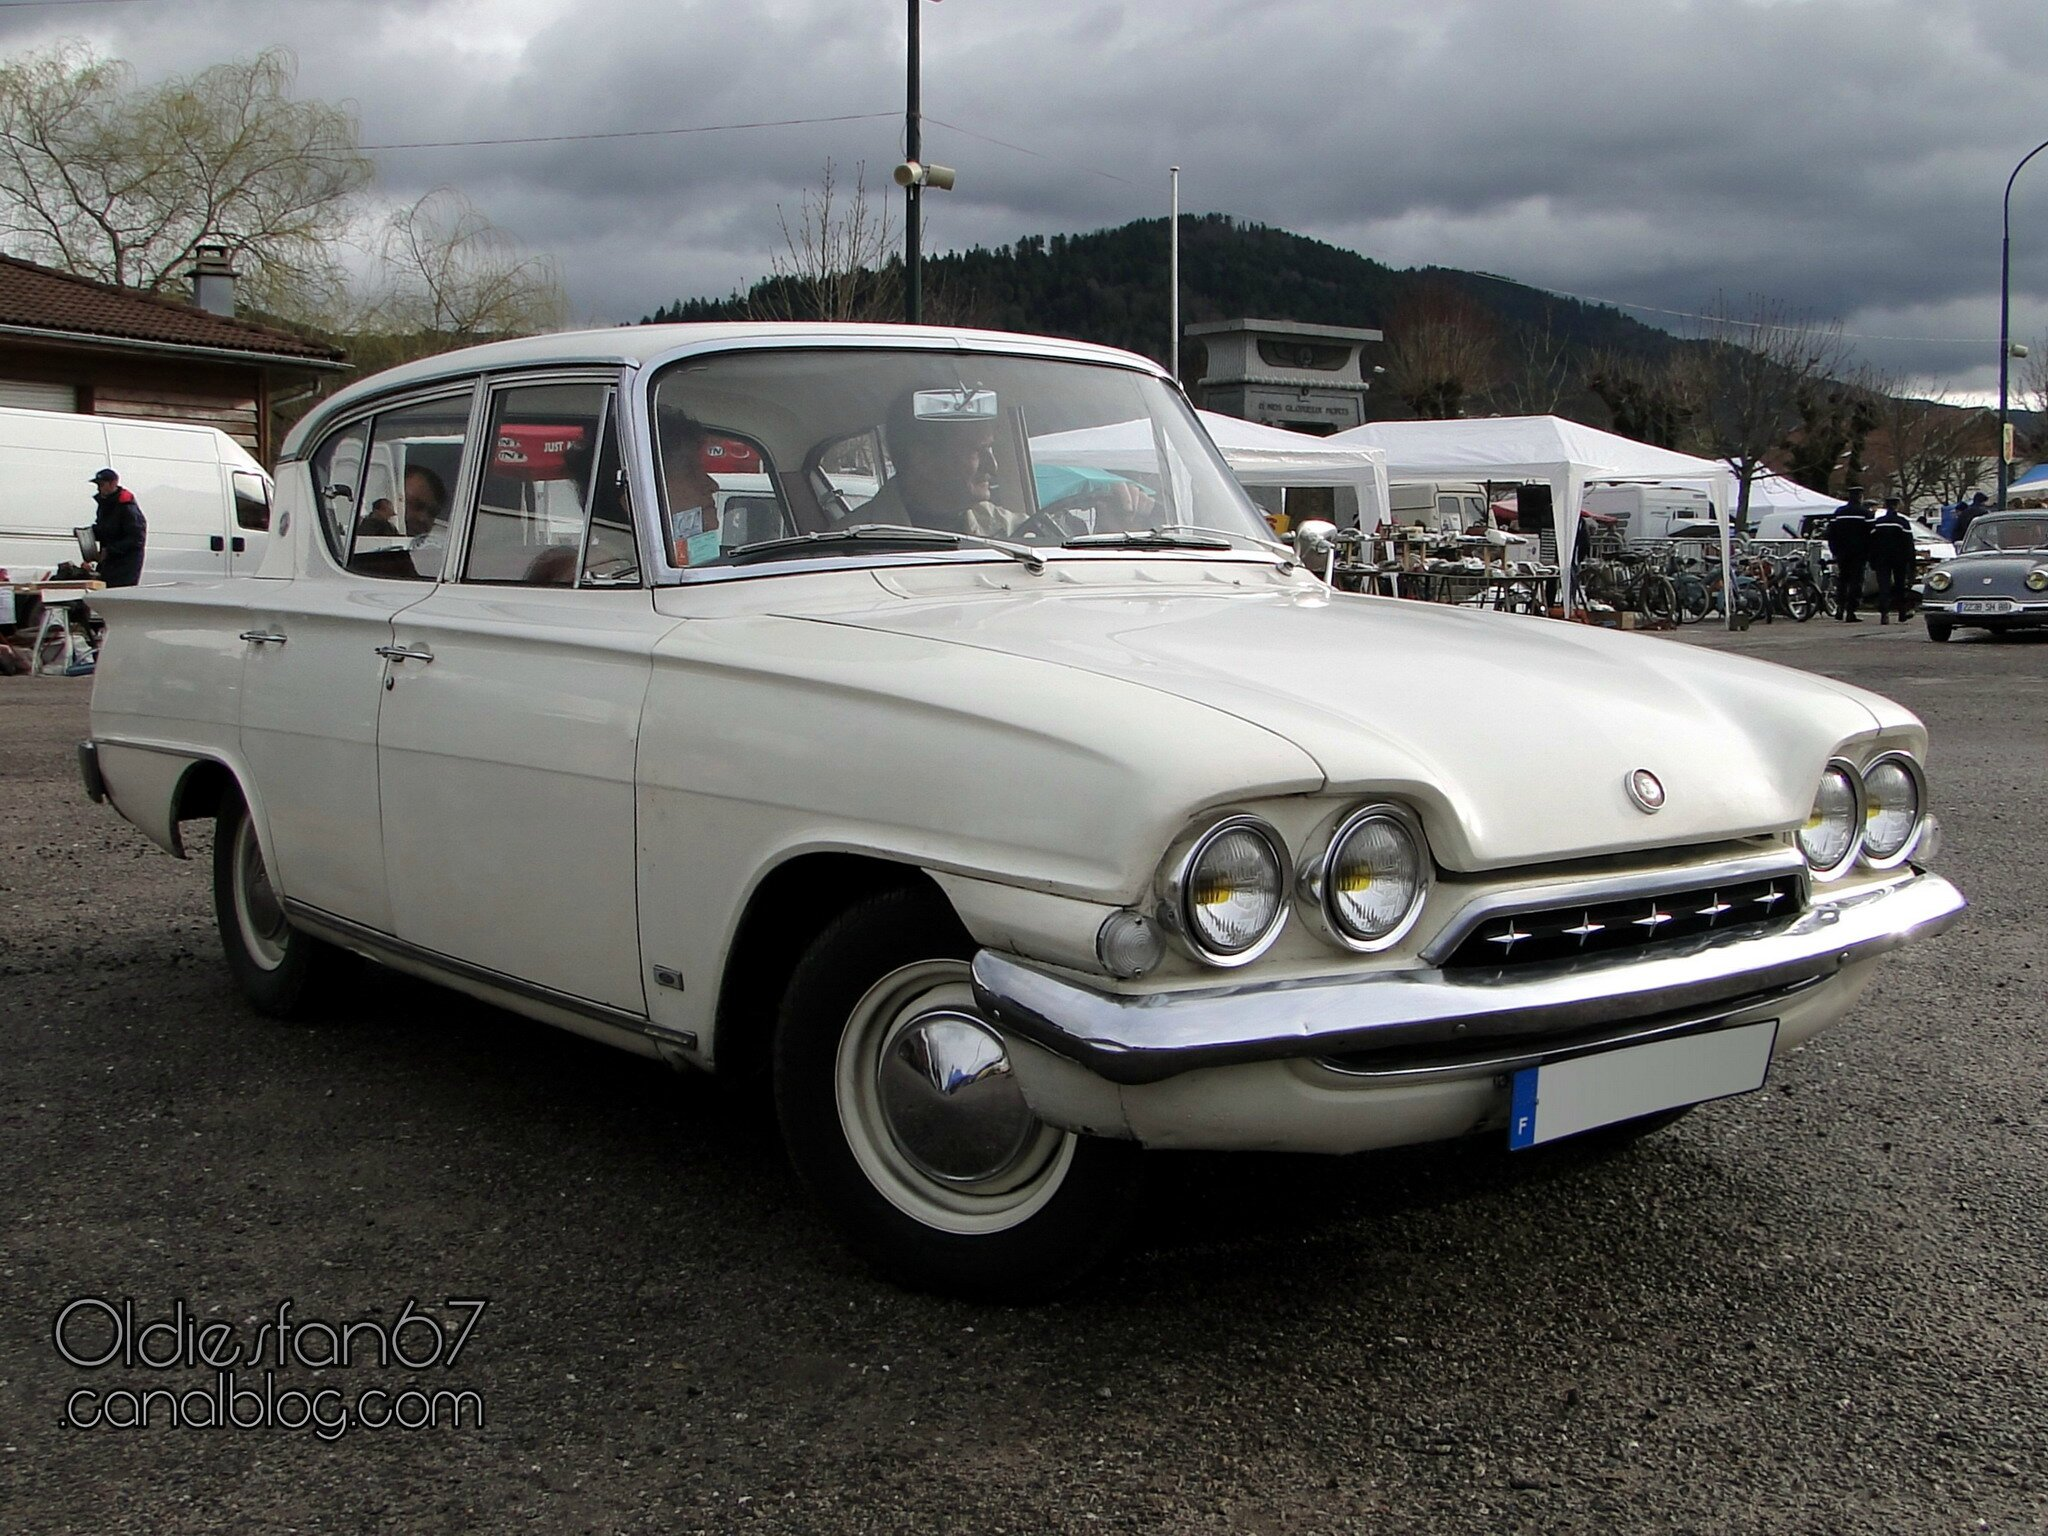 ford consul 315 4door 1961 1963 oldiesfan67 mon blog auto. Black Bedroom Furniture Sets. Home Design Ideas